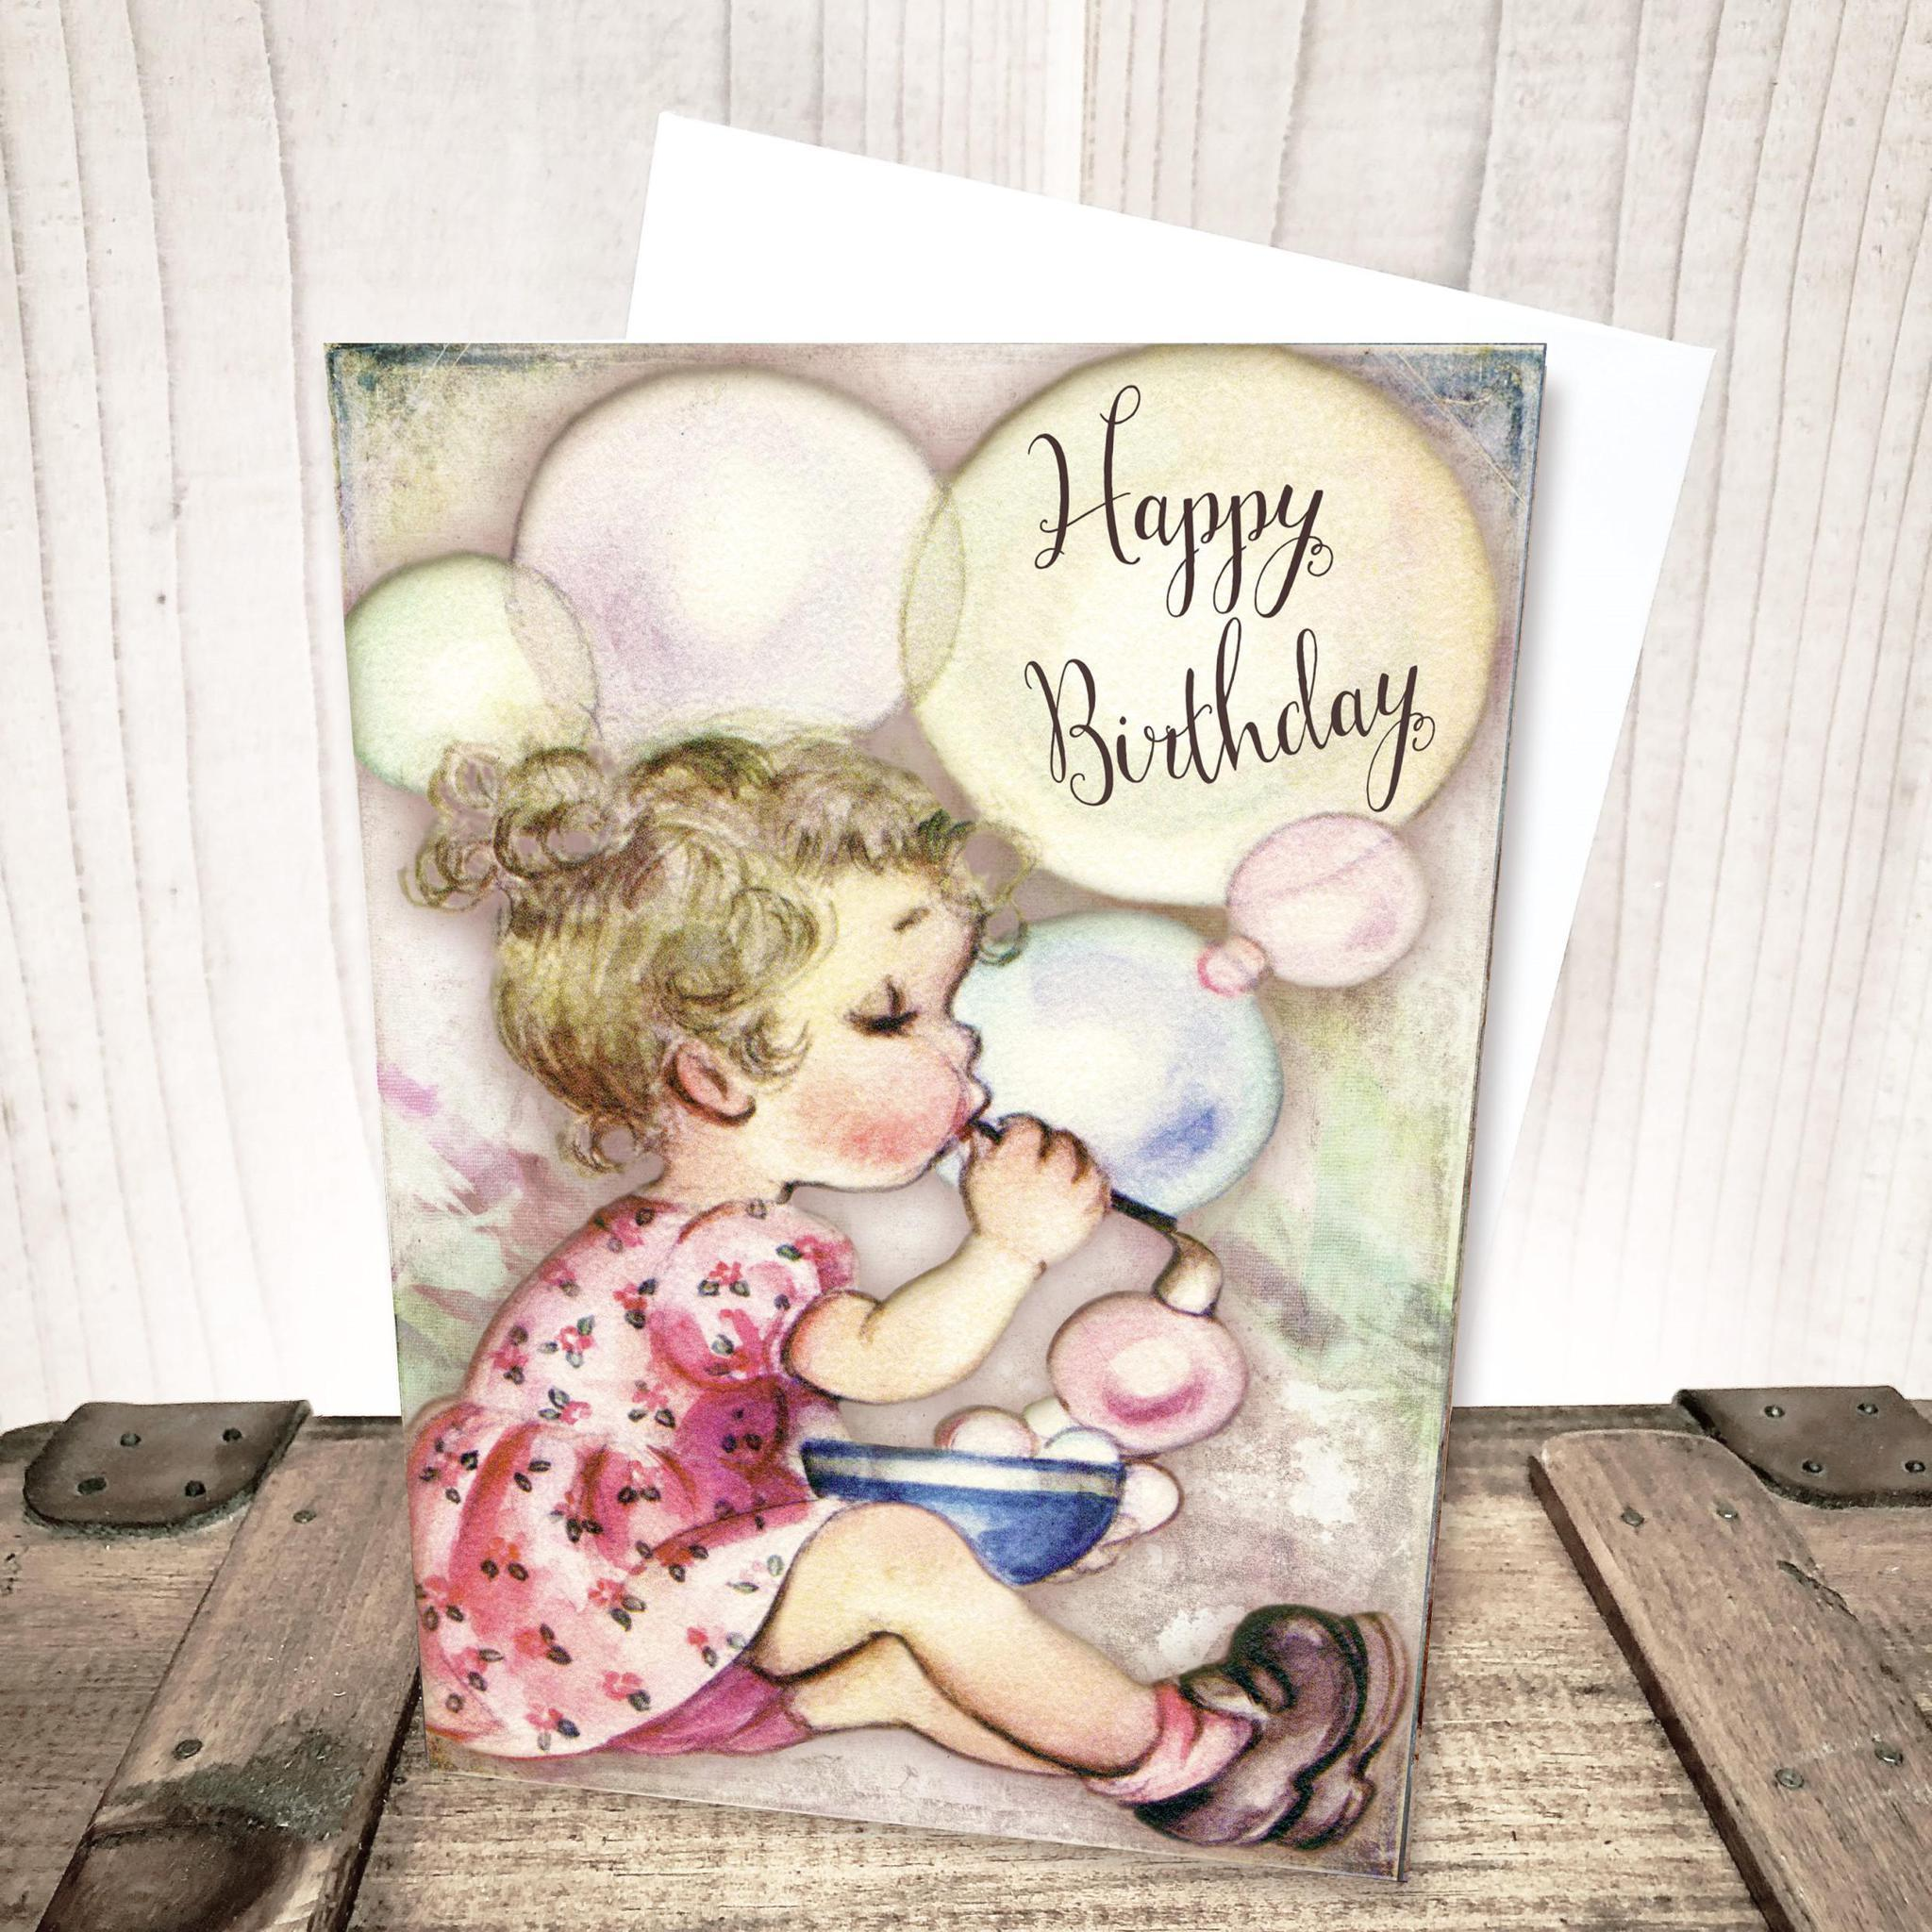 Blowing Bubbles Birthday Card by Yesterday's Best